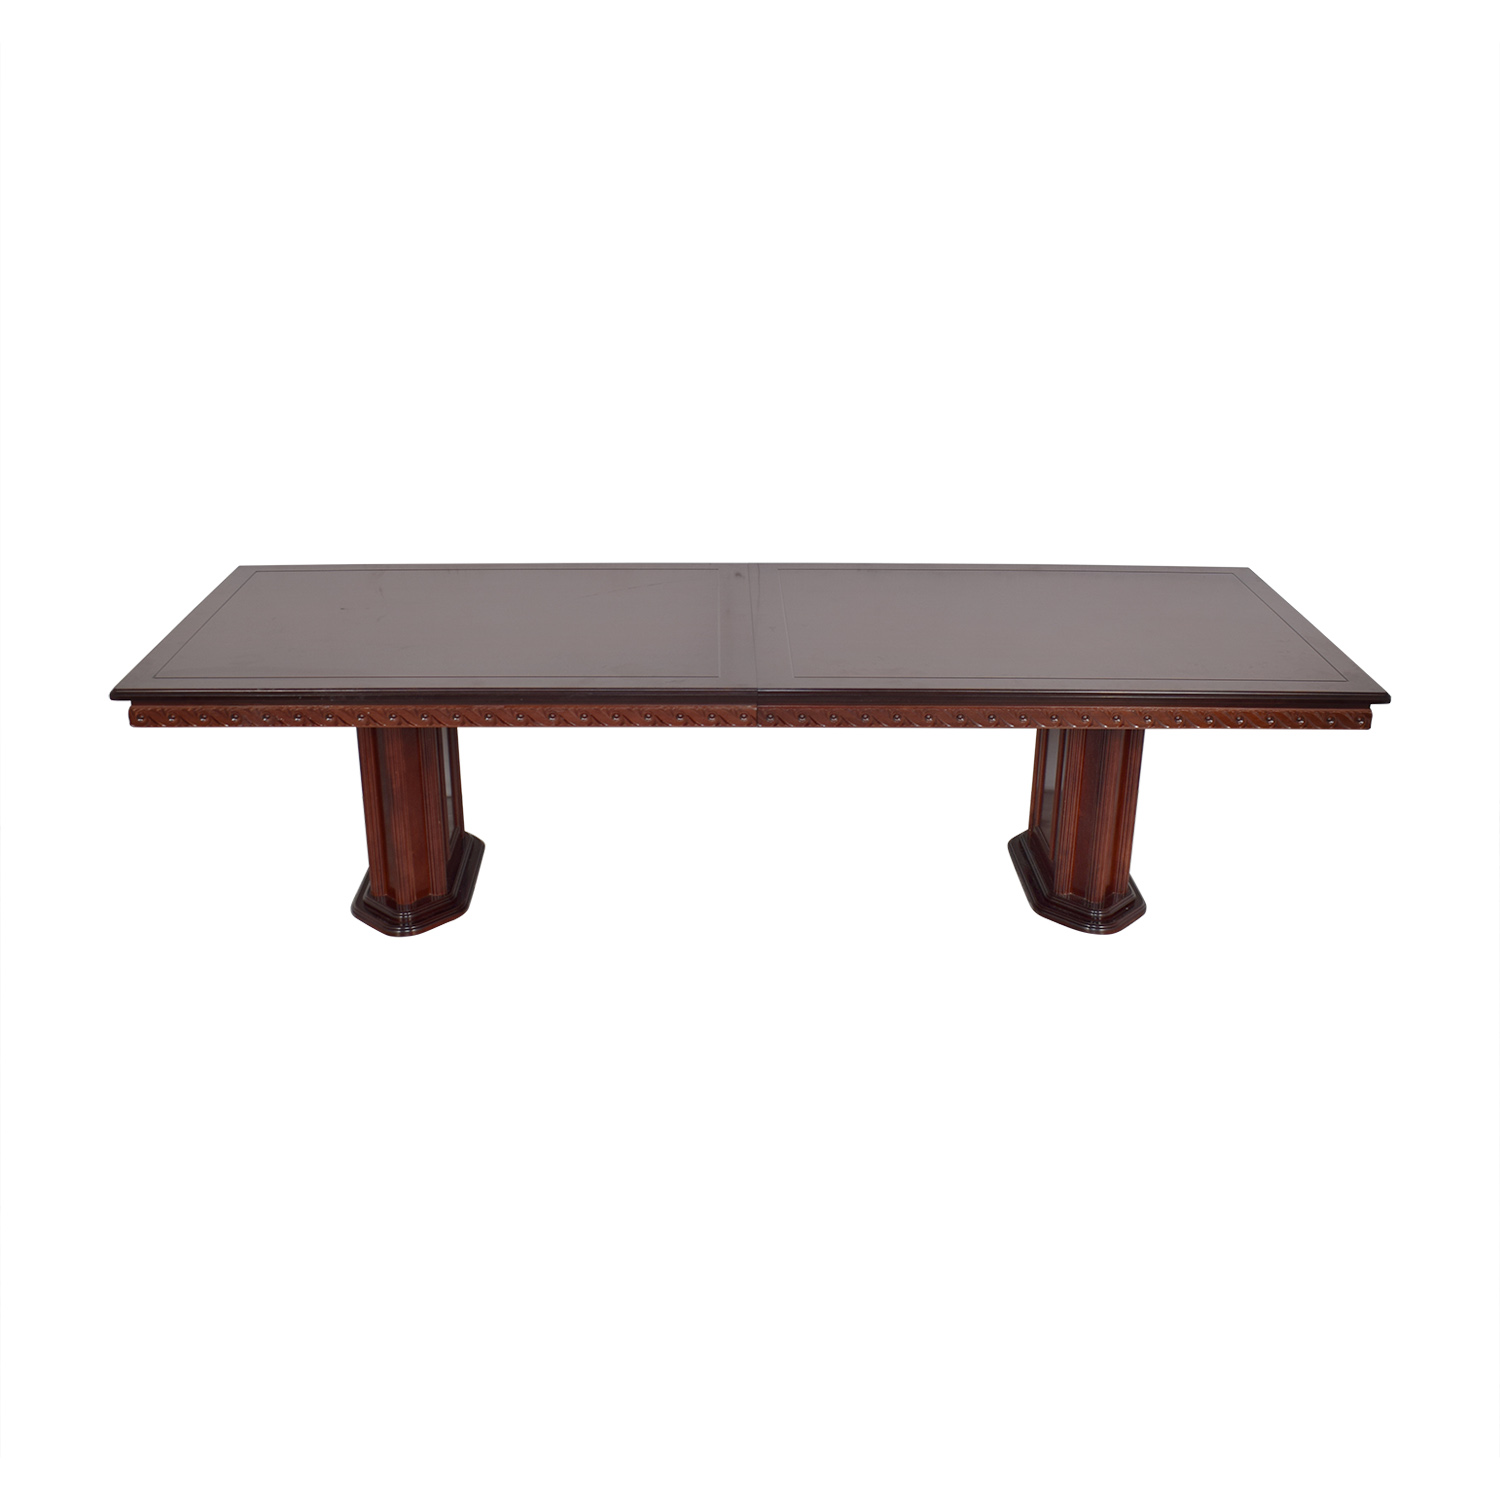 Rectangular Extendable Dining Room Table for sale